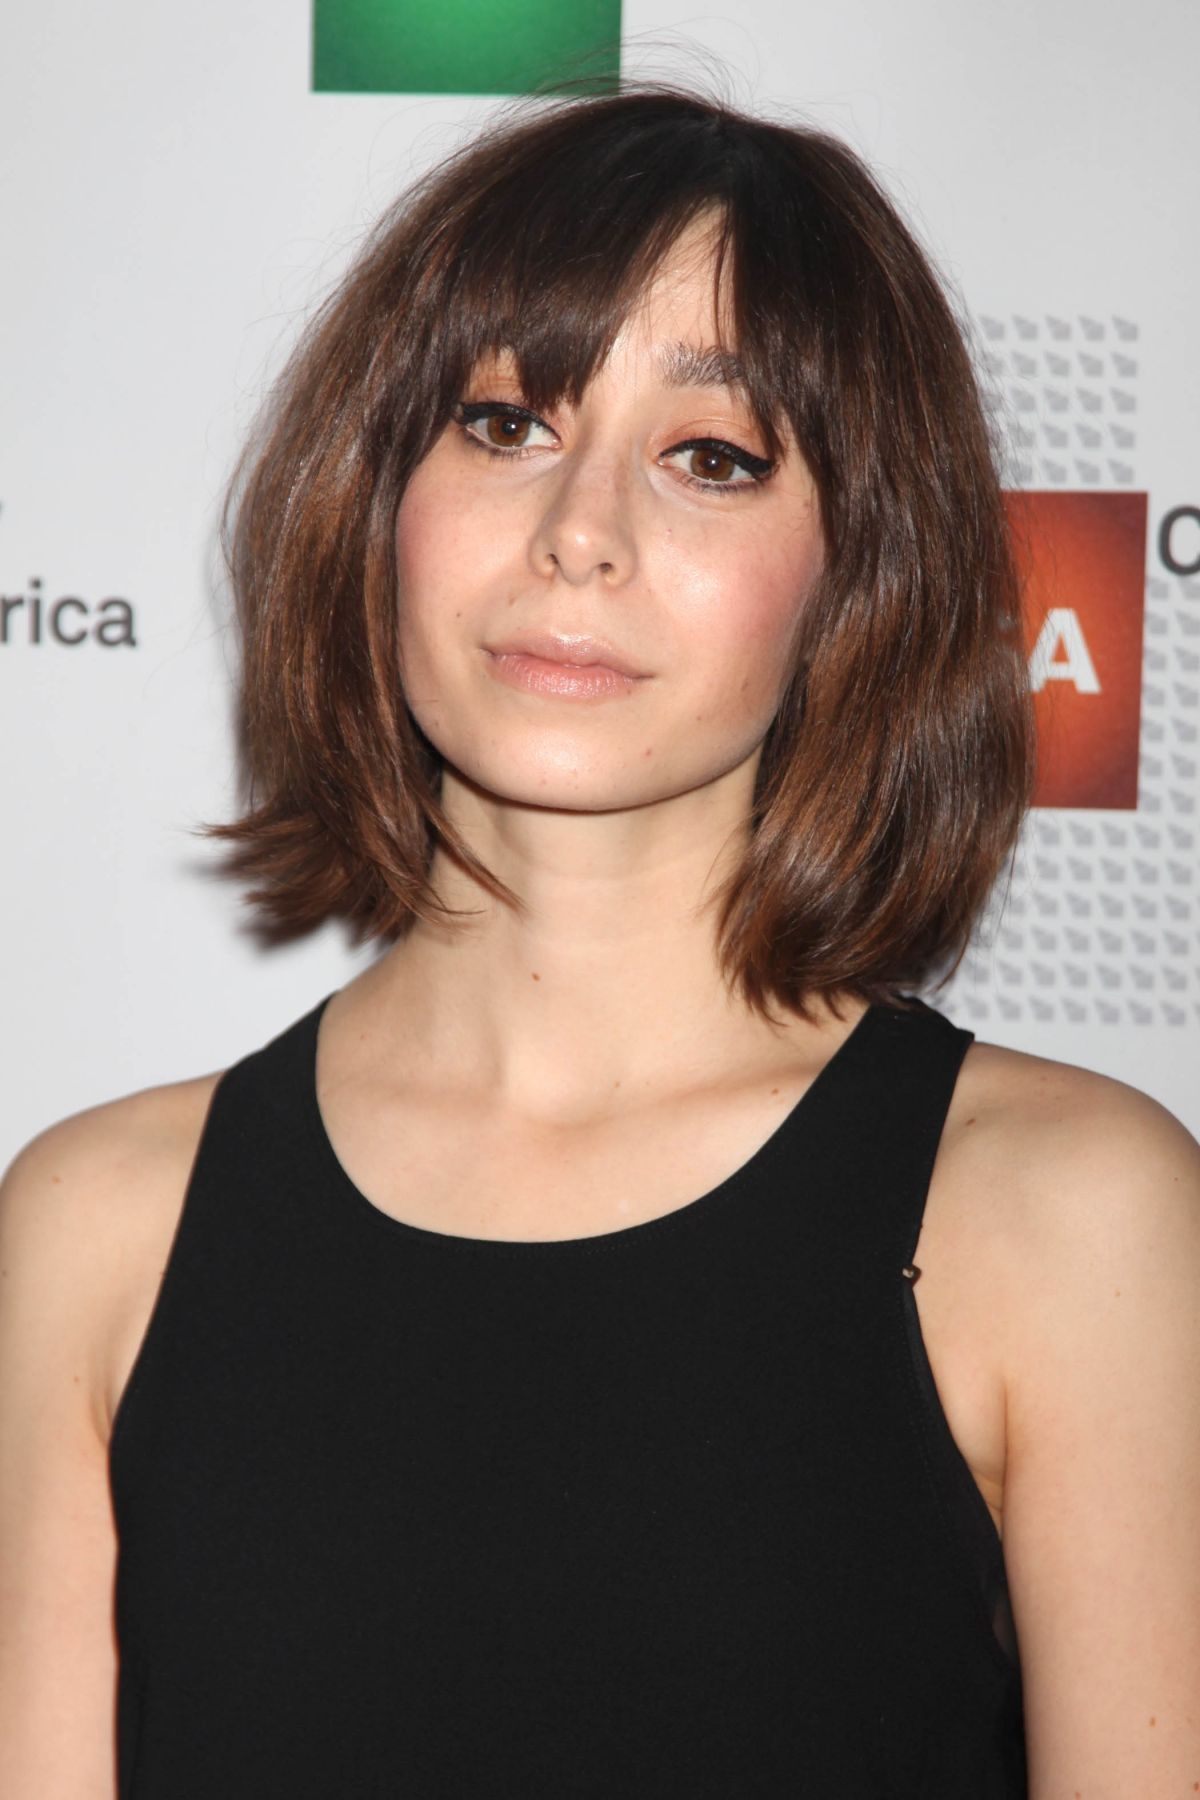 CRISTIN MILIOTI at 2015 Artios Awards for Casting in New York